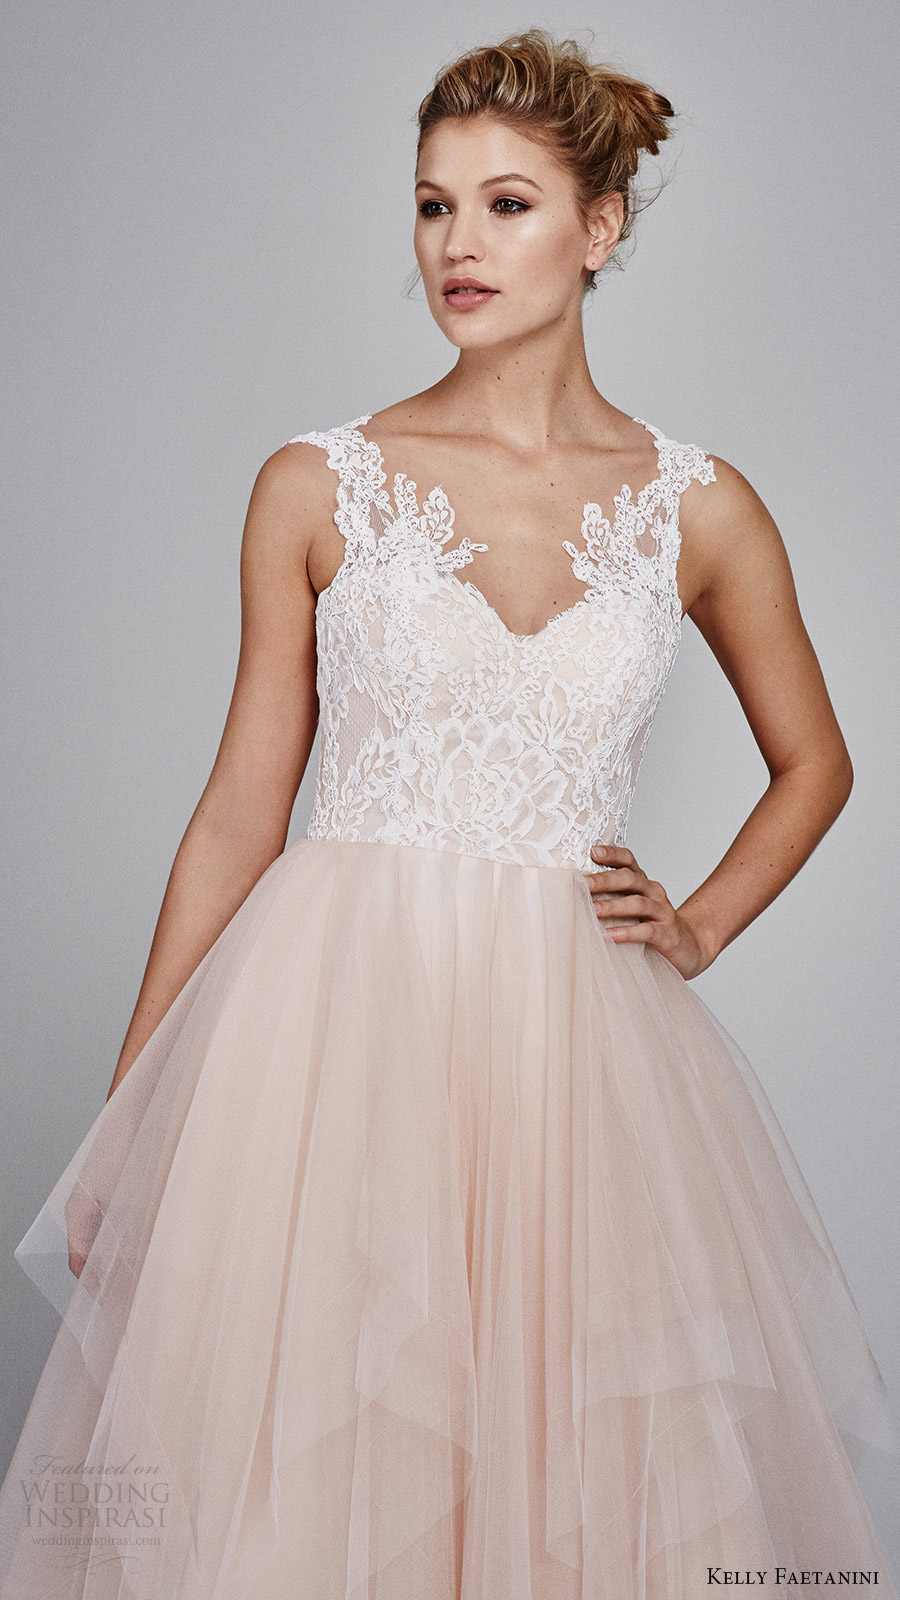 kelly faetanini fall 2017 sleeveless sweetheart lace bodice aline wedding dress (azalea) zv blush skirt lace hem